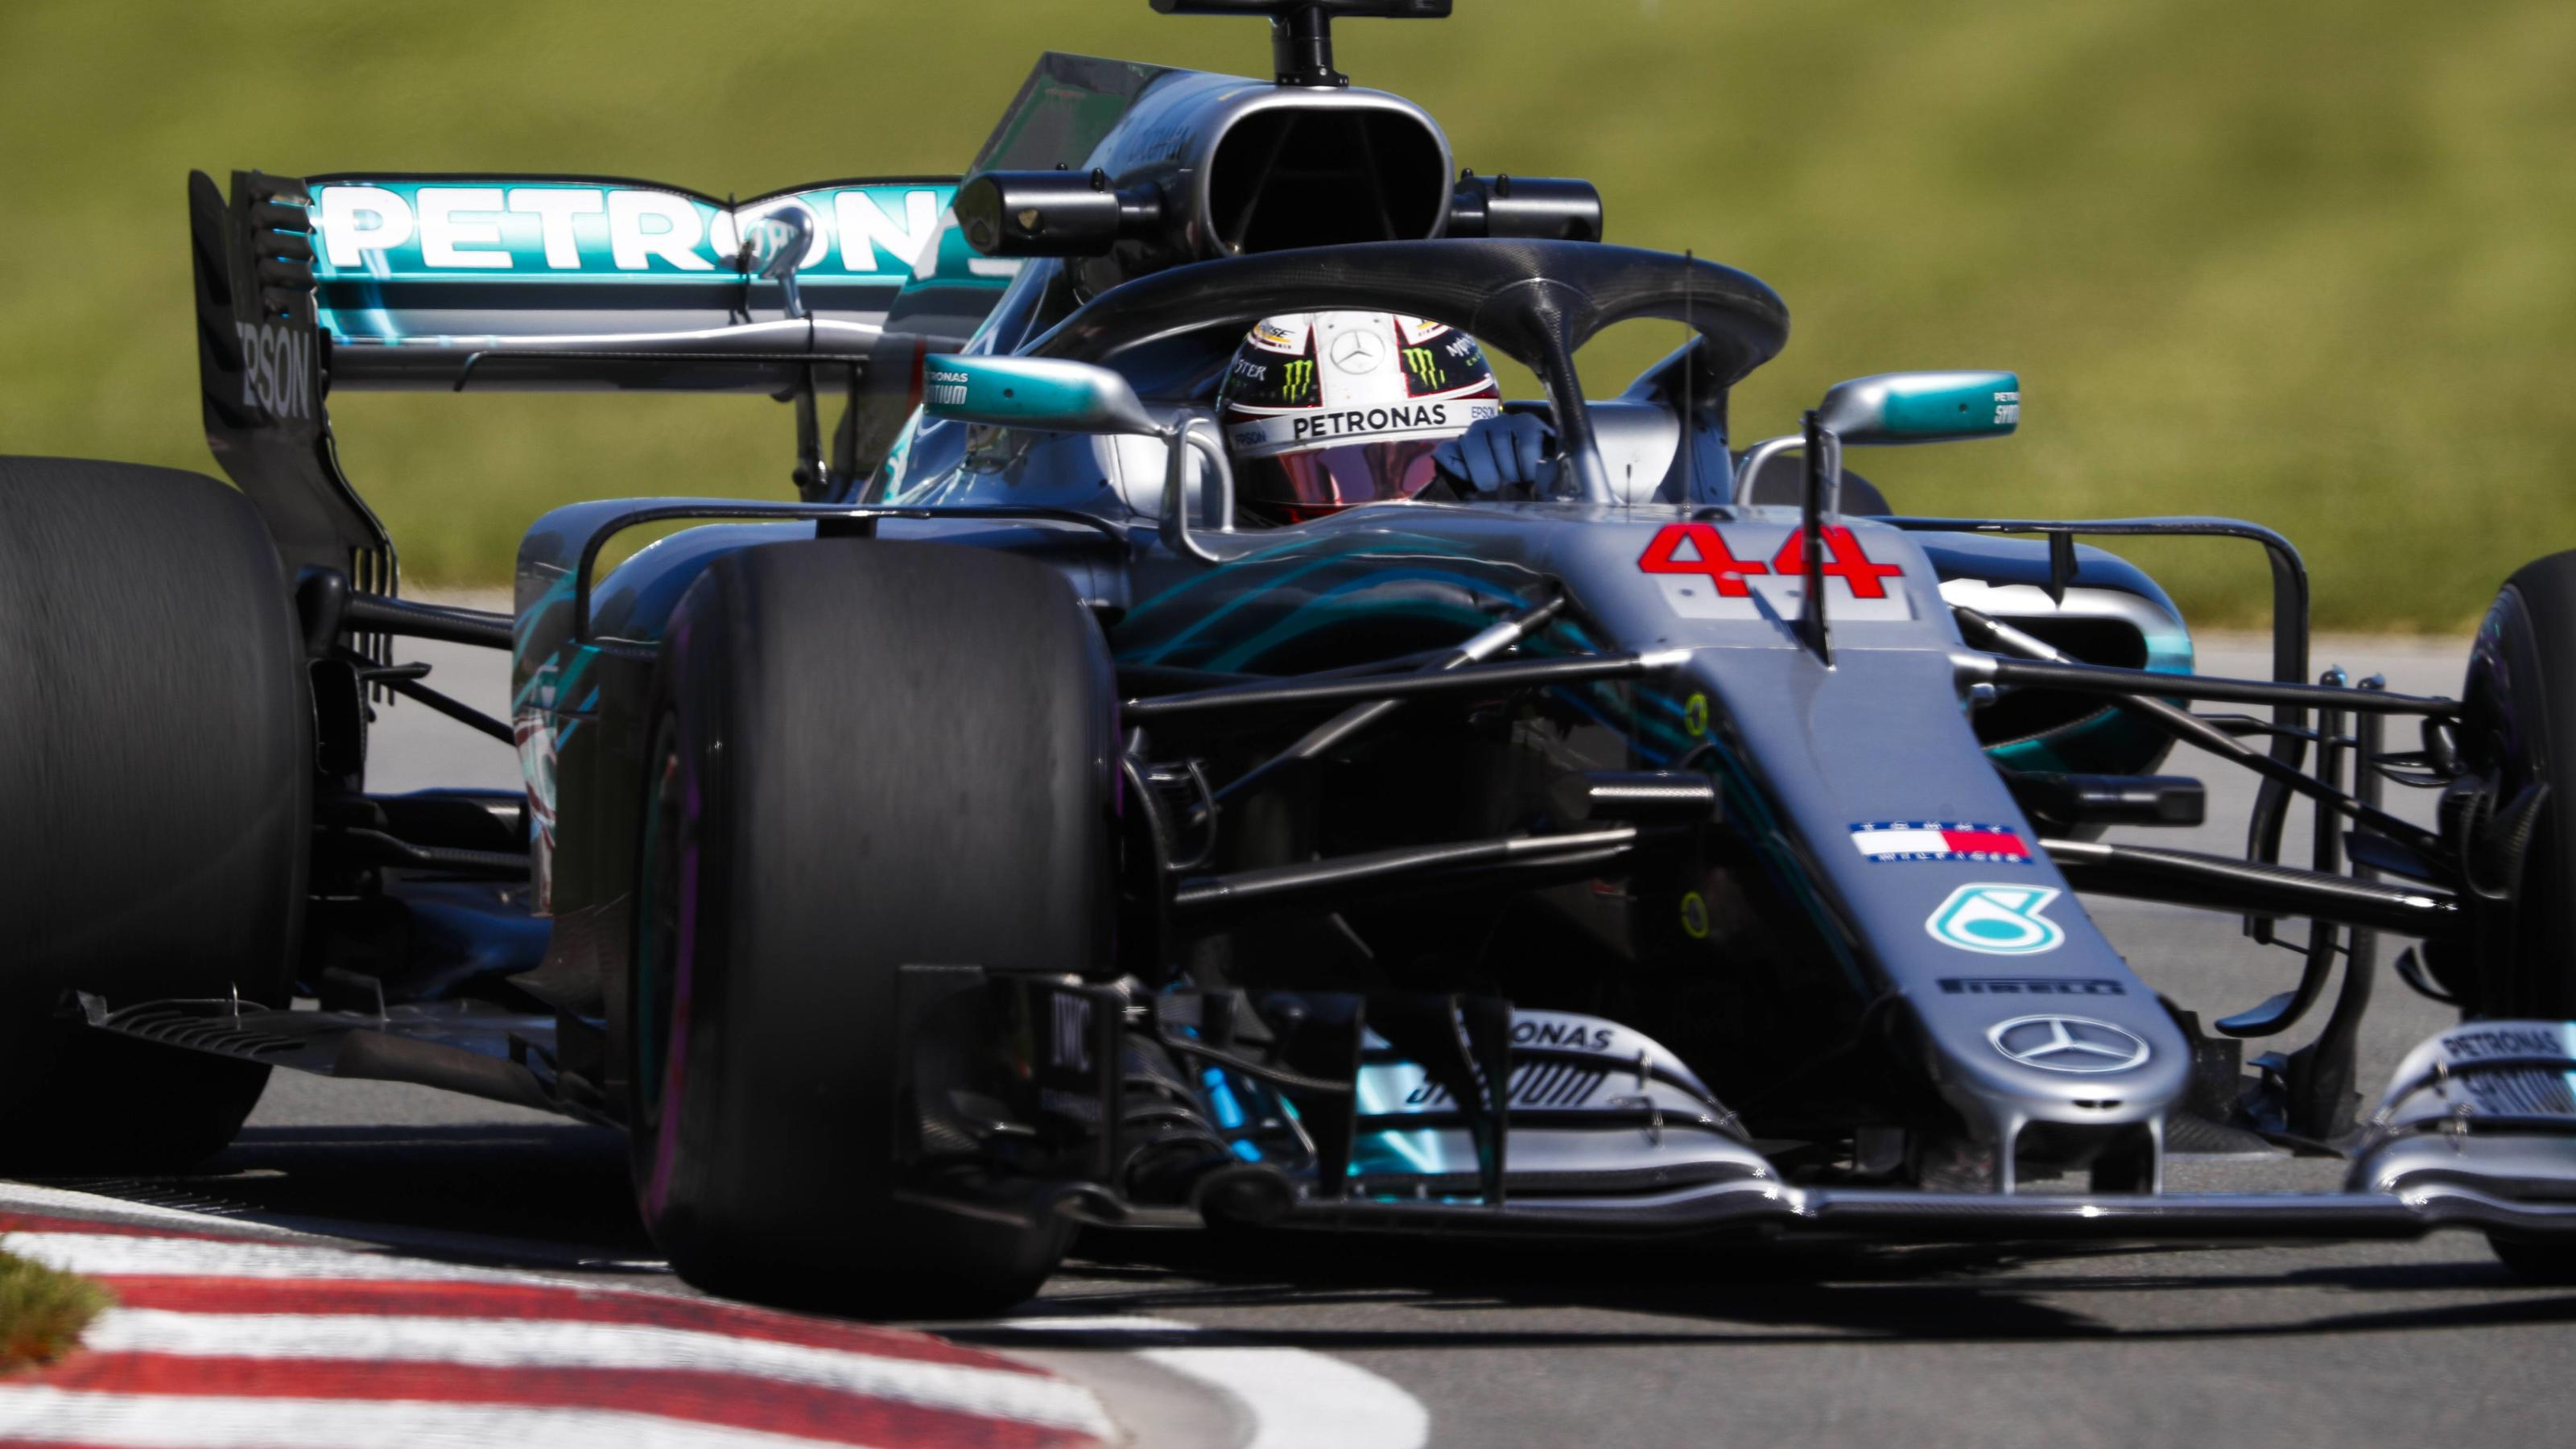 2018 Canadian GP CIRCUIT GILLES-VILLENEUVE, CANADA - JUNE 08: Lewis Hamilton, Mercedes AMG F1 W09 during the Canadian GP at Circuit Gilles-Villeneuve on June 08, 2018 in Circuit Gilles-Villeneuve, Canada. (Photo by Steven Tee / LAT Images) 1015289040